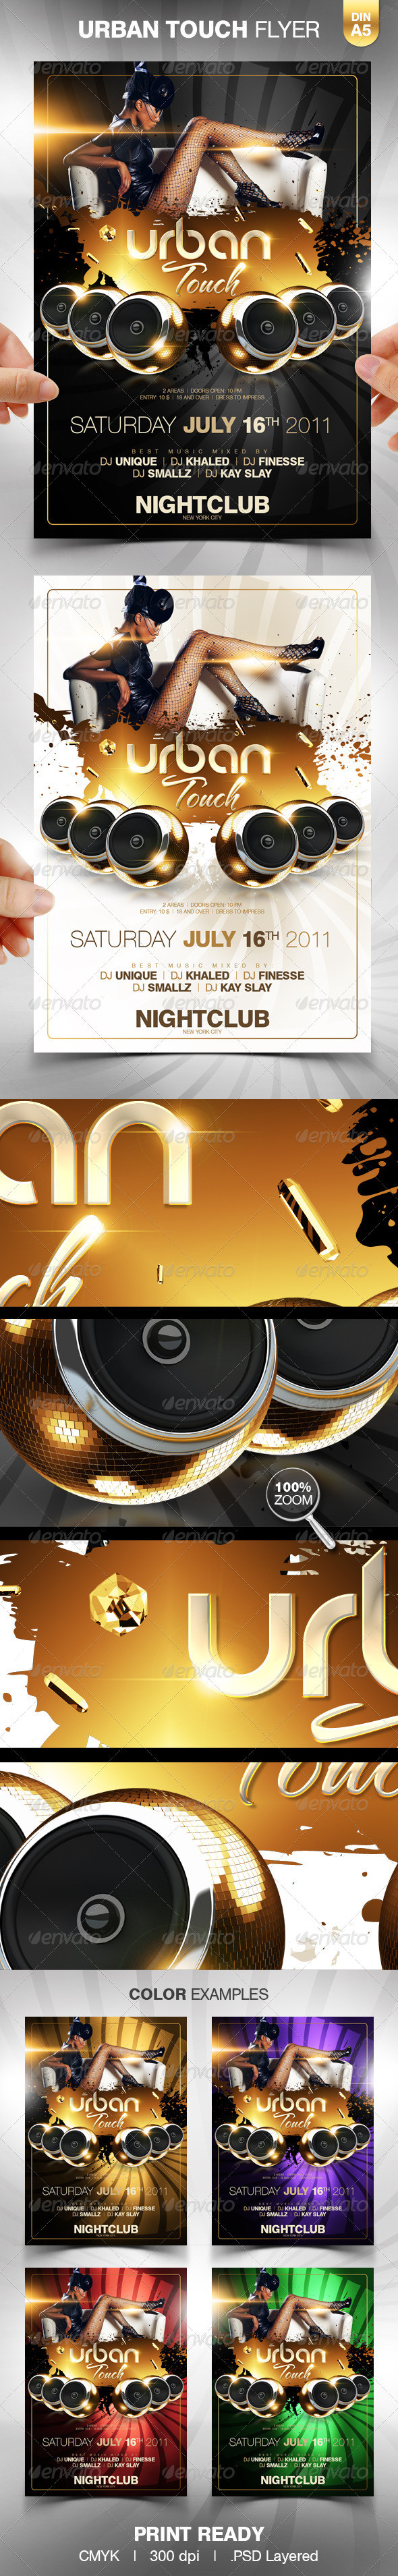 Urban Touch Party Flyer Template preview big